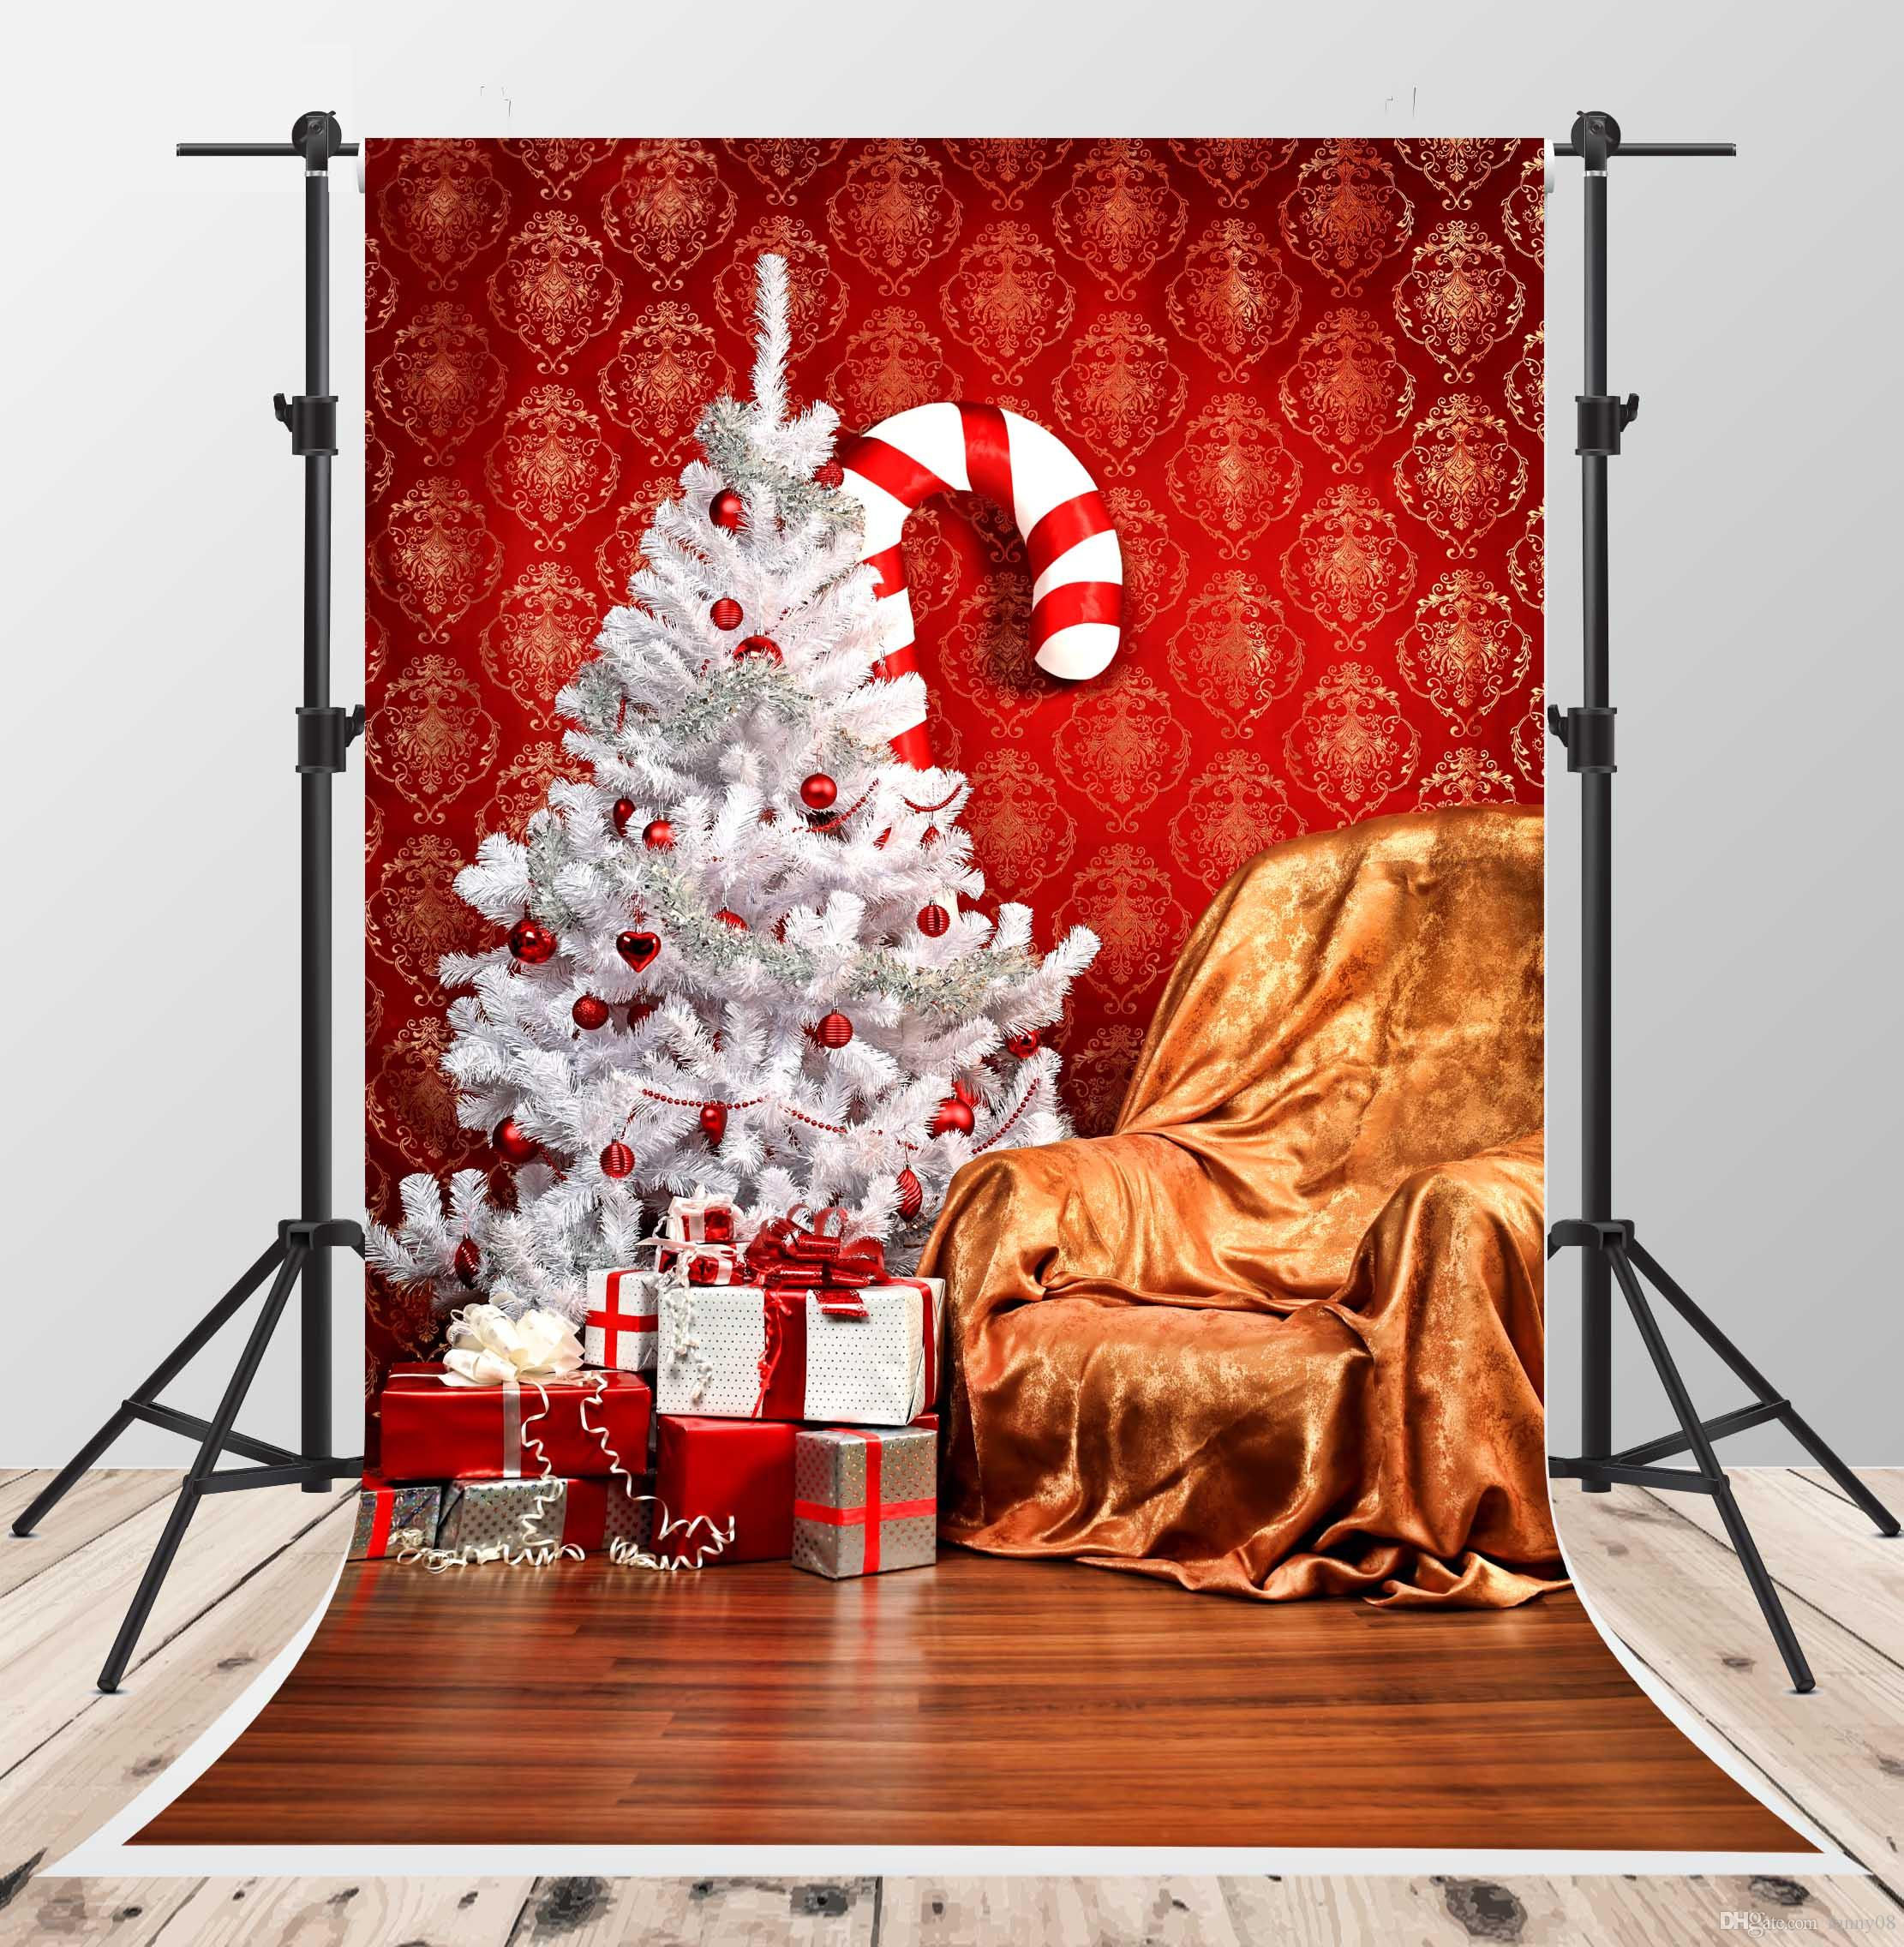 2018 White Christmas Tree Photo Backgrounds Wood Floor Backdrop For Photography 5x7ft Red Wallpaper Shooting From Fanny08 2272